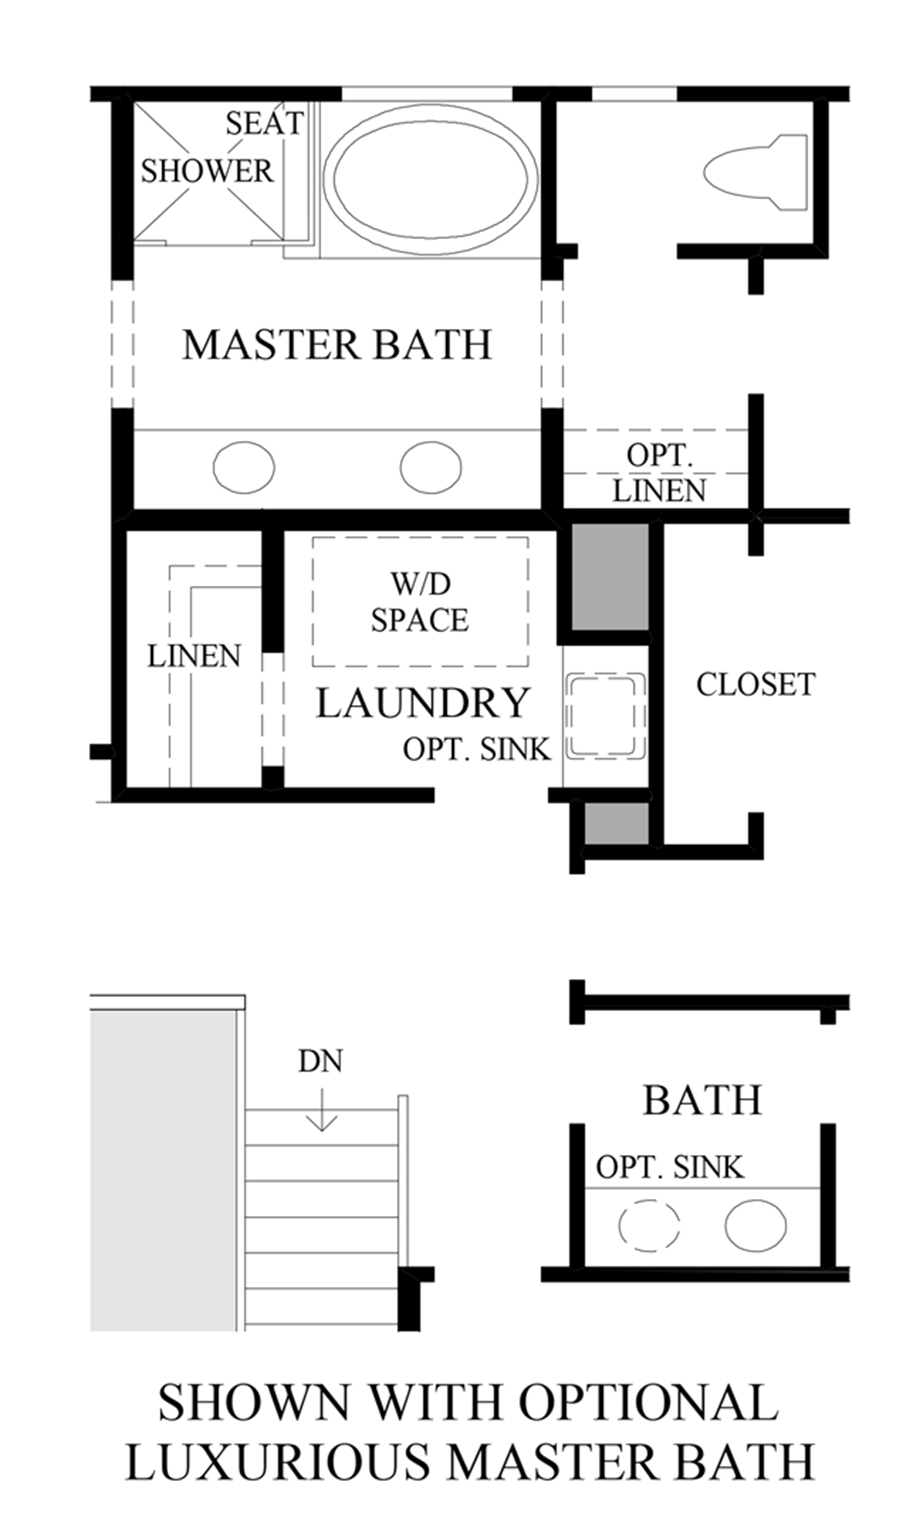 Optional Luxurious Master Bath Floor Plan